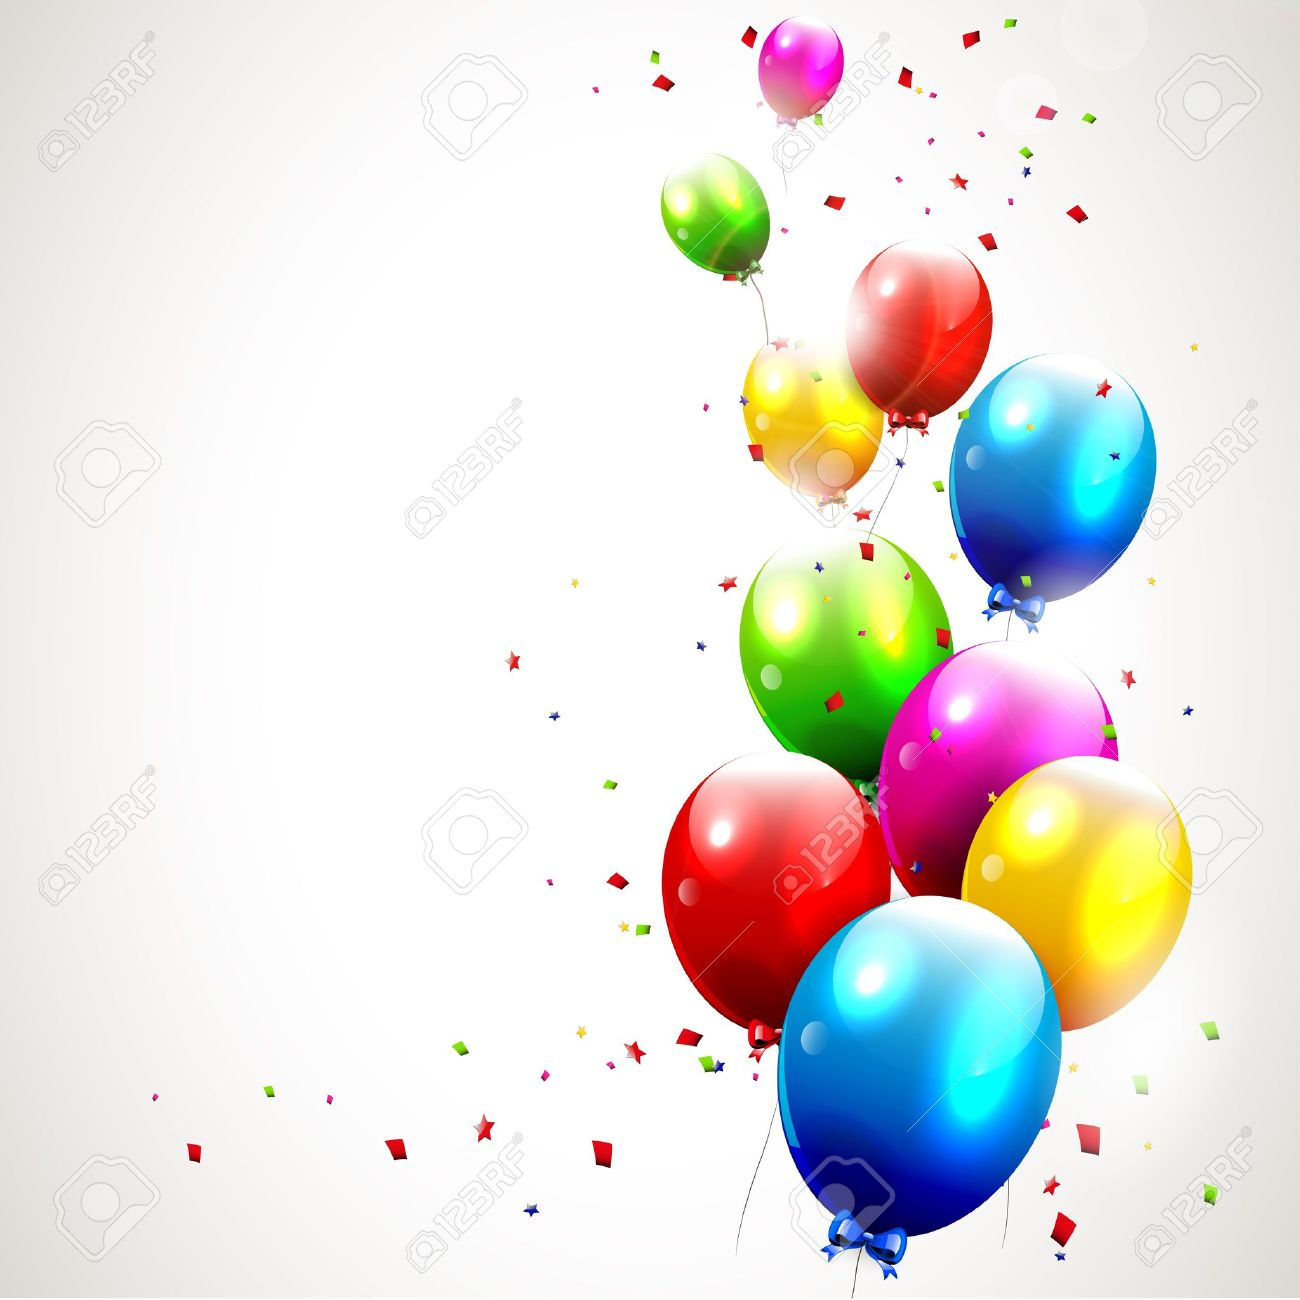 Modern birthday background with colorful balloons Stock Vector - 16464754